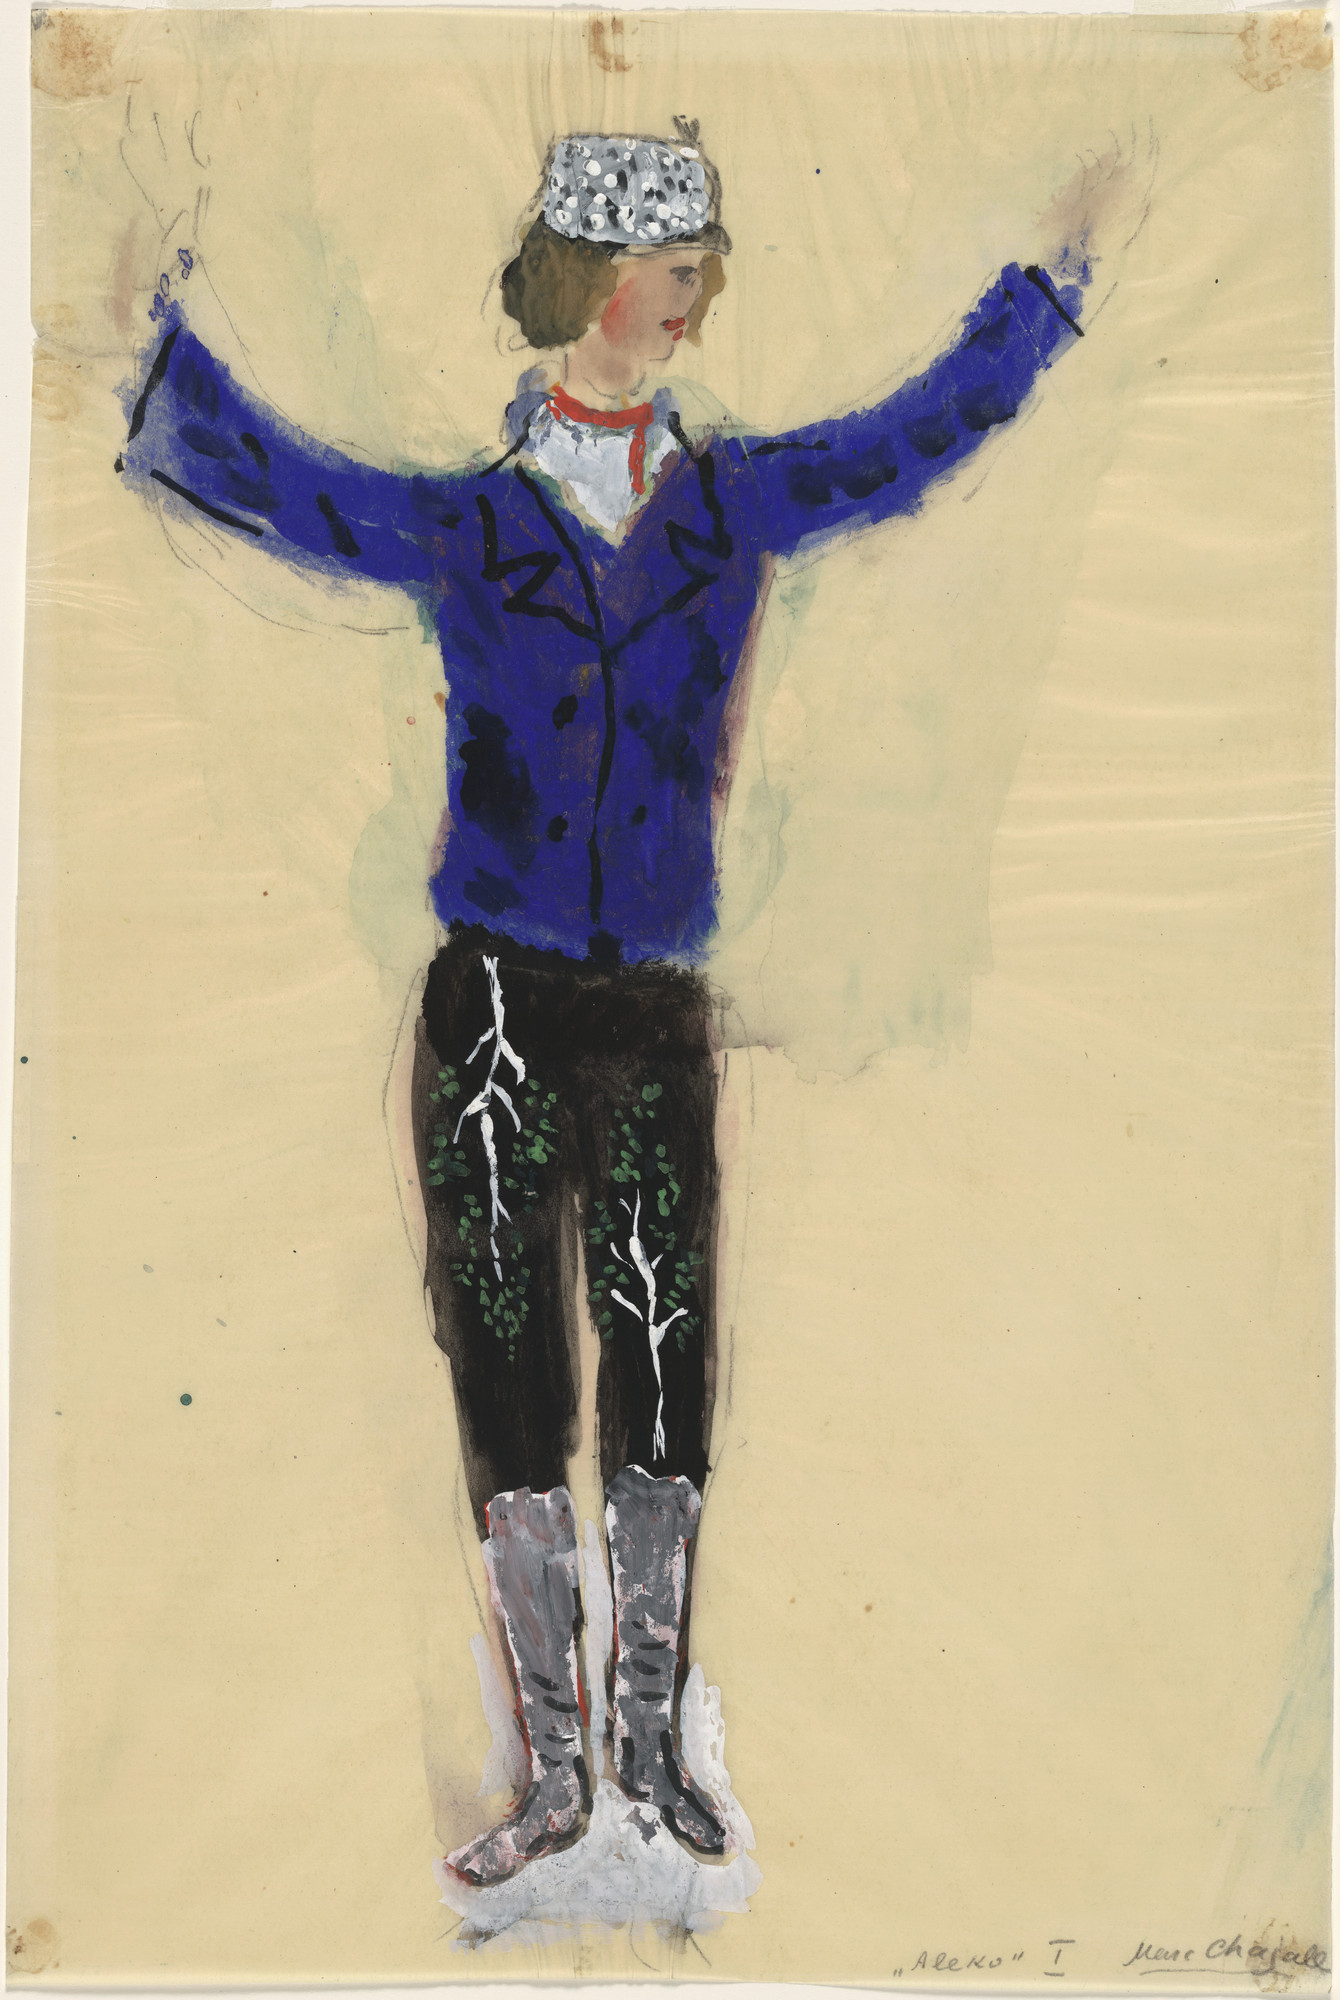 Marc Chagall. Aleko, costume design for Aleko (Scene I). (1942)